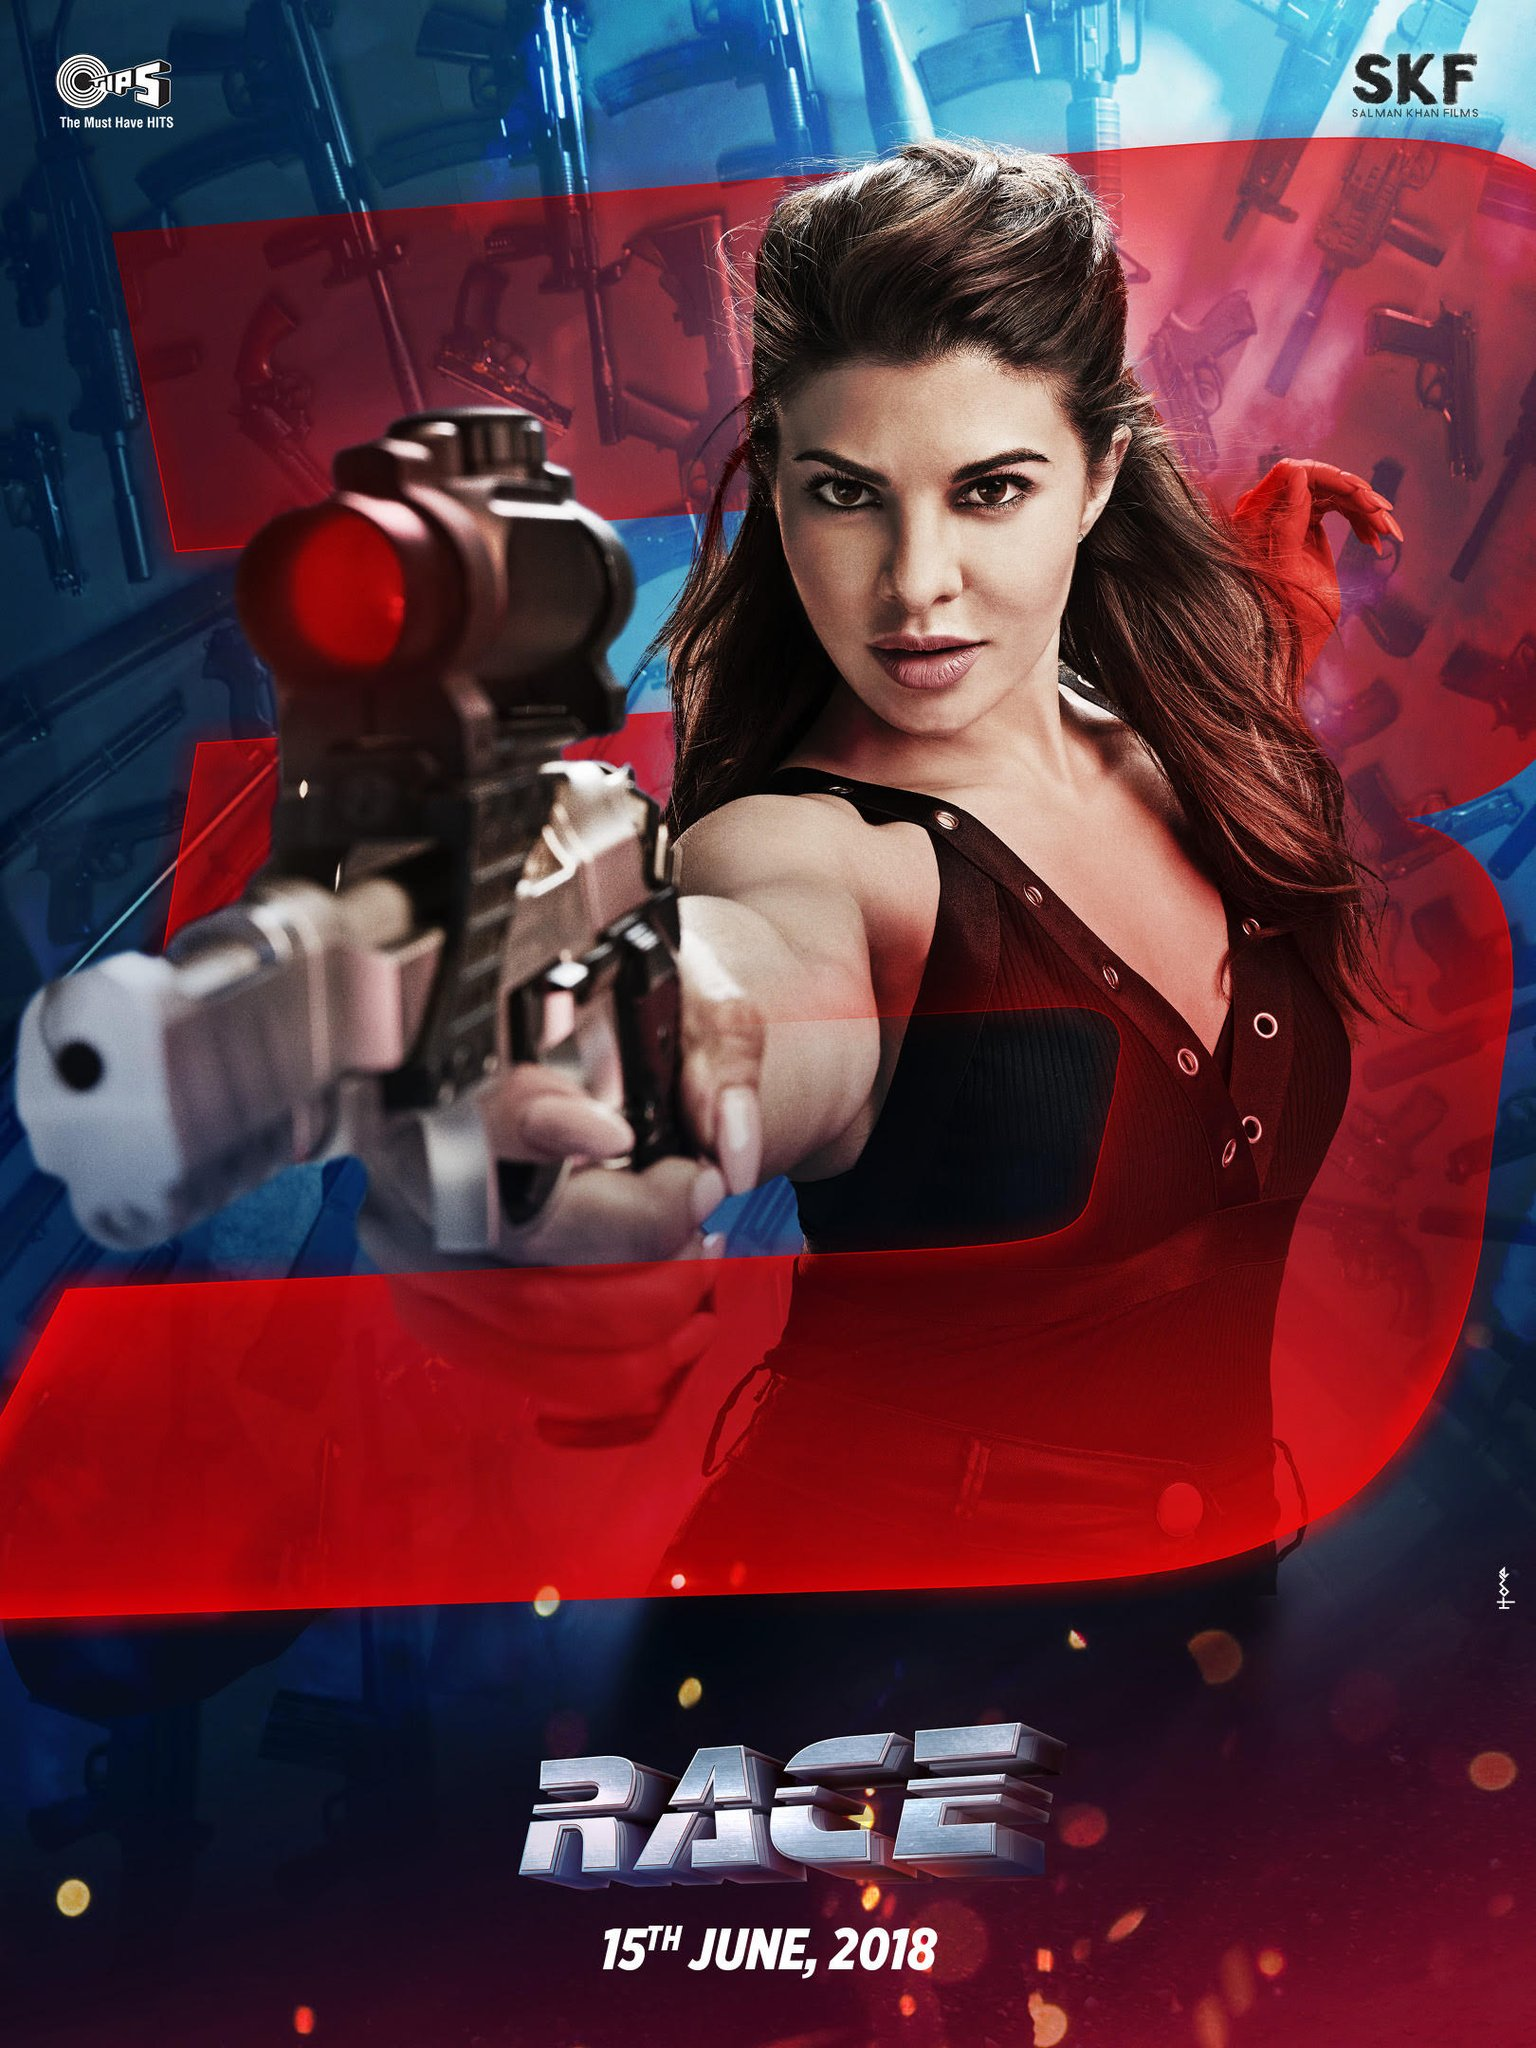 Jacqueline Fernandez as Jessica - Raw Power - Race 3 first look Poster